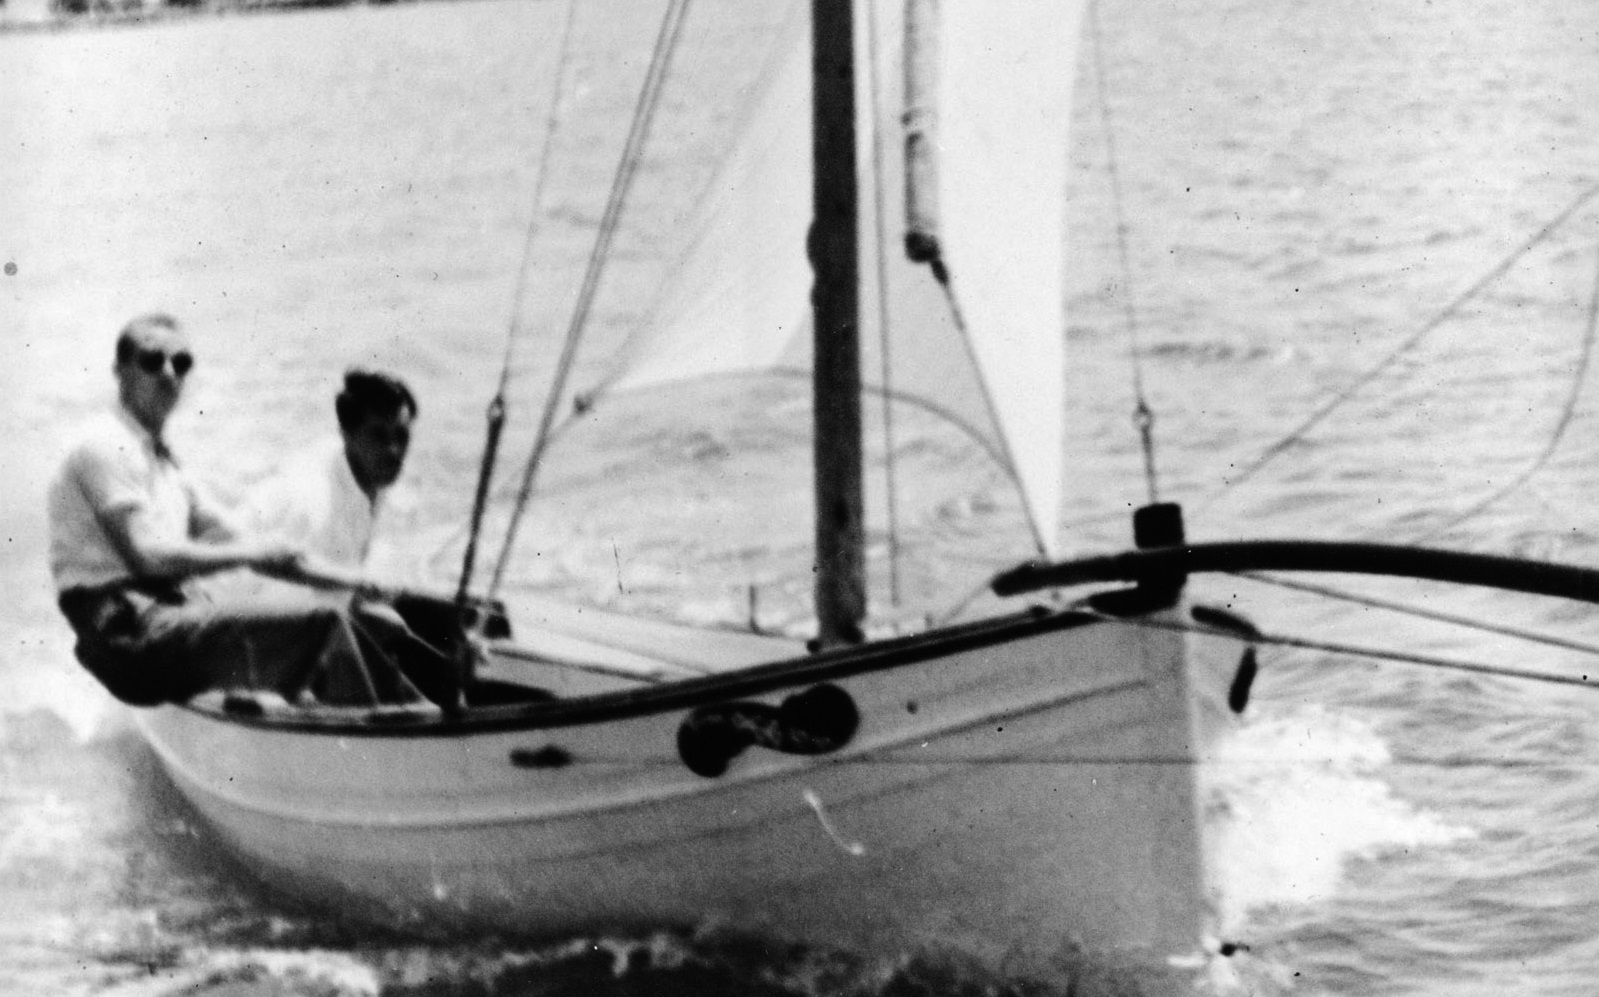 About sasga yachts and minorca yachts - history 2